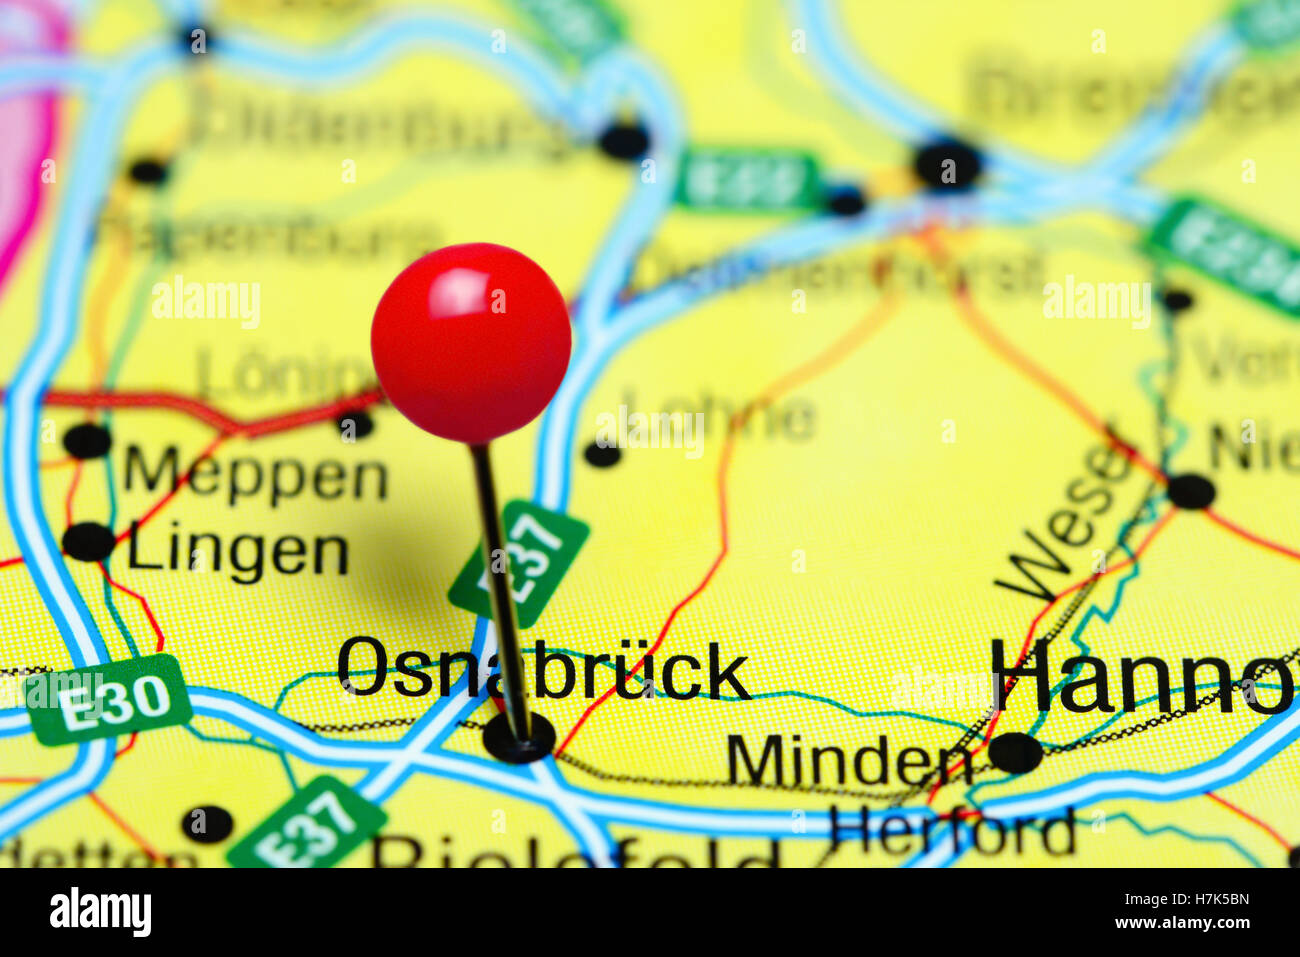 Osnabruck pinned on a map of Germany Stock Photo Royalty Free Image